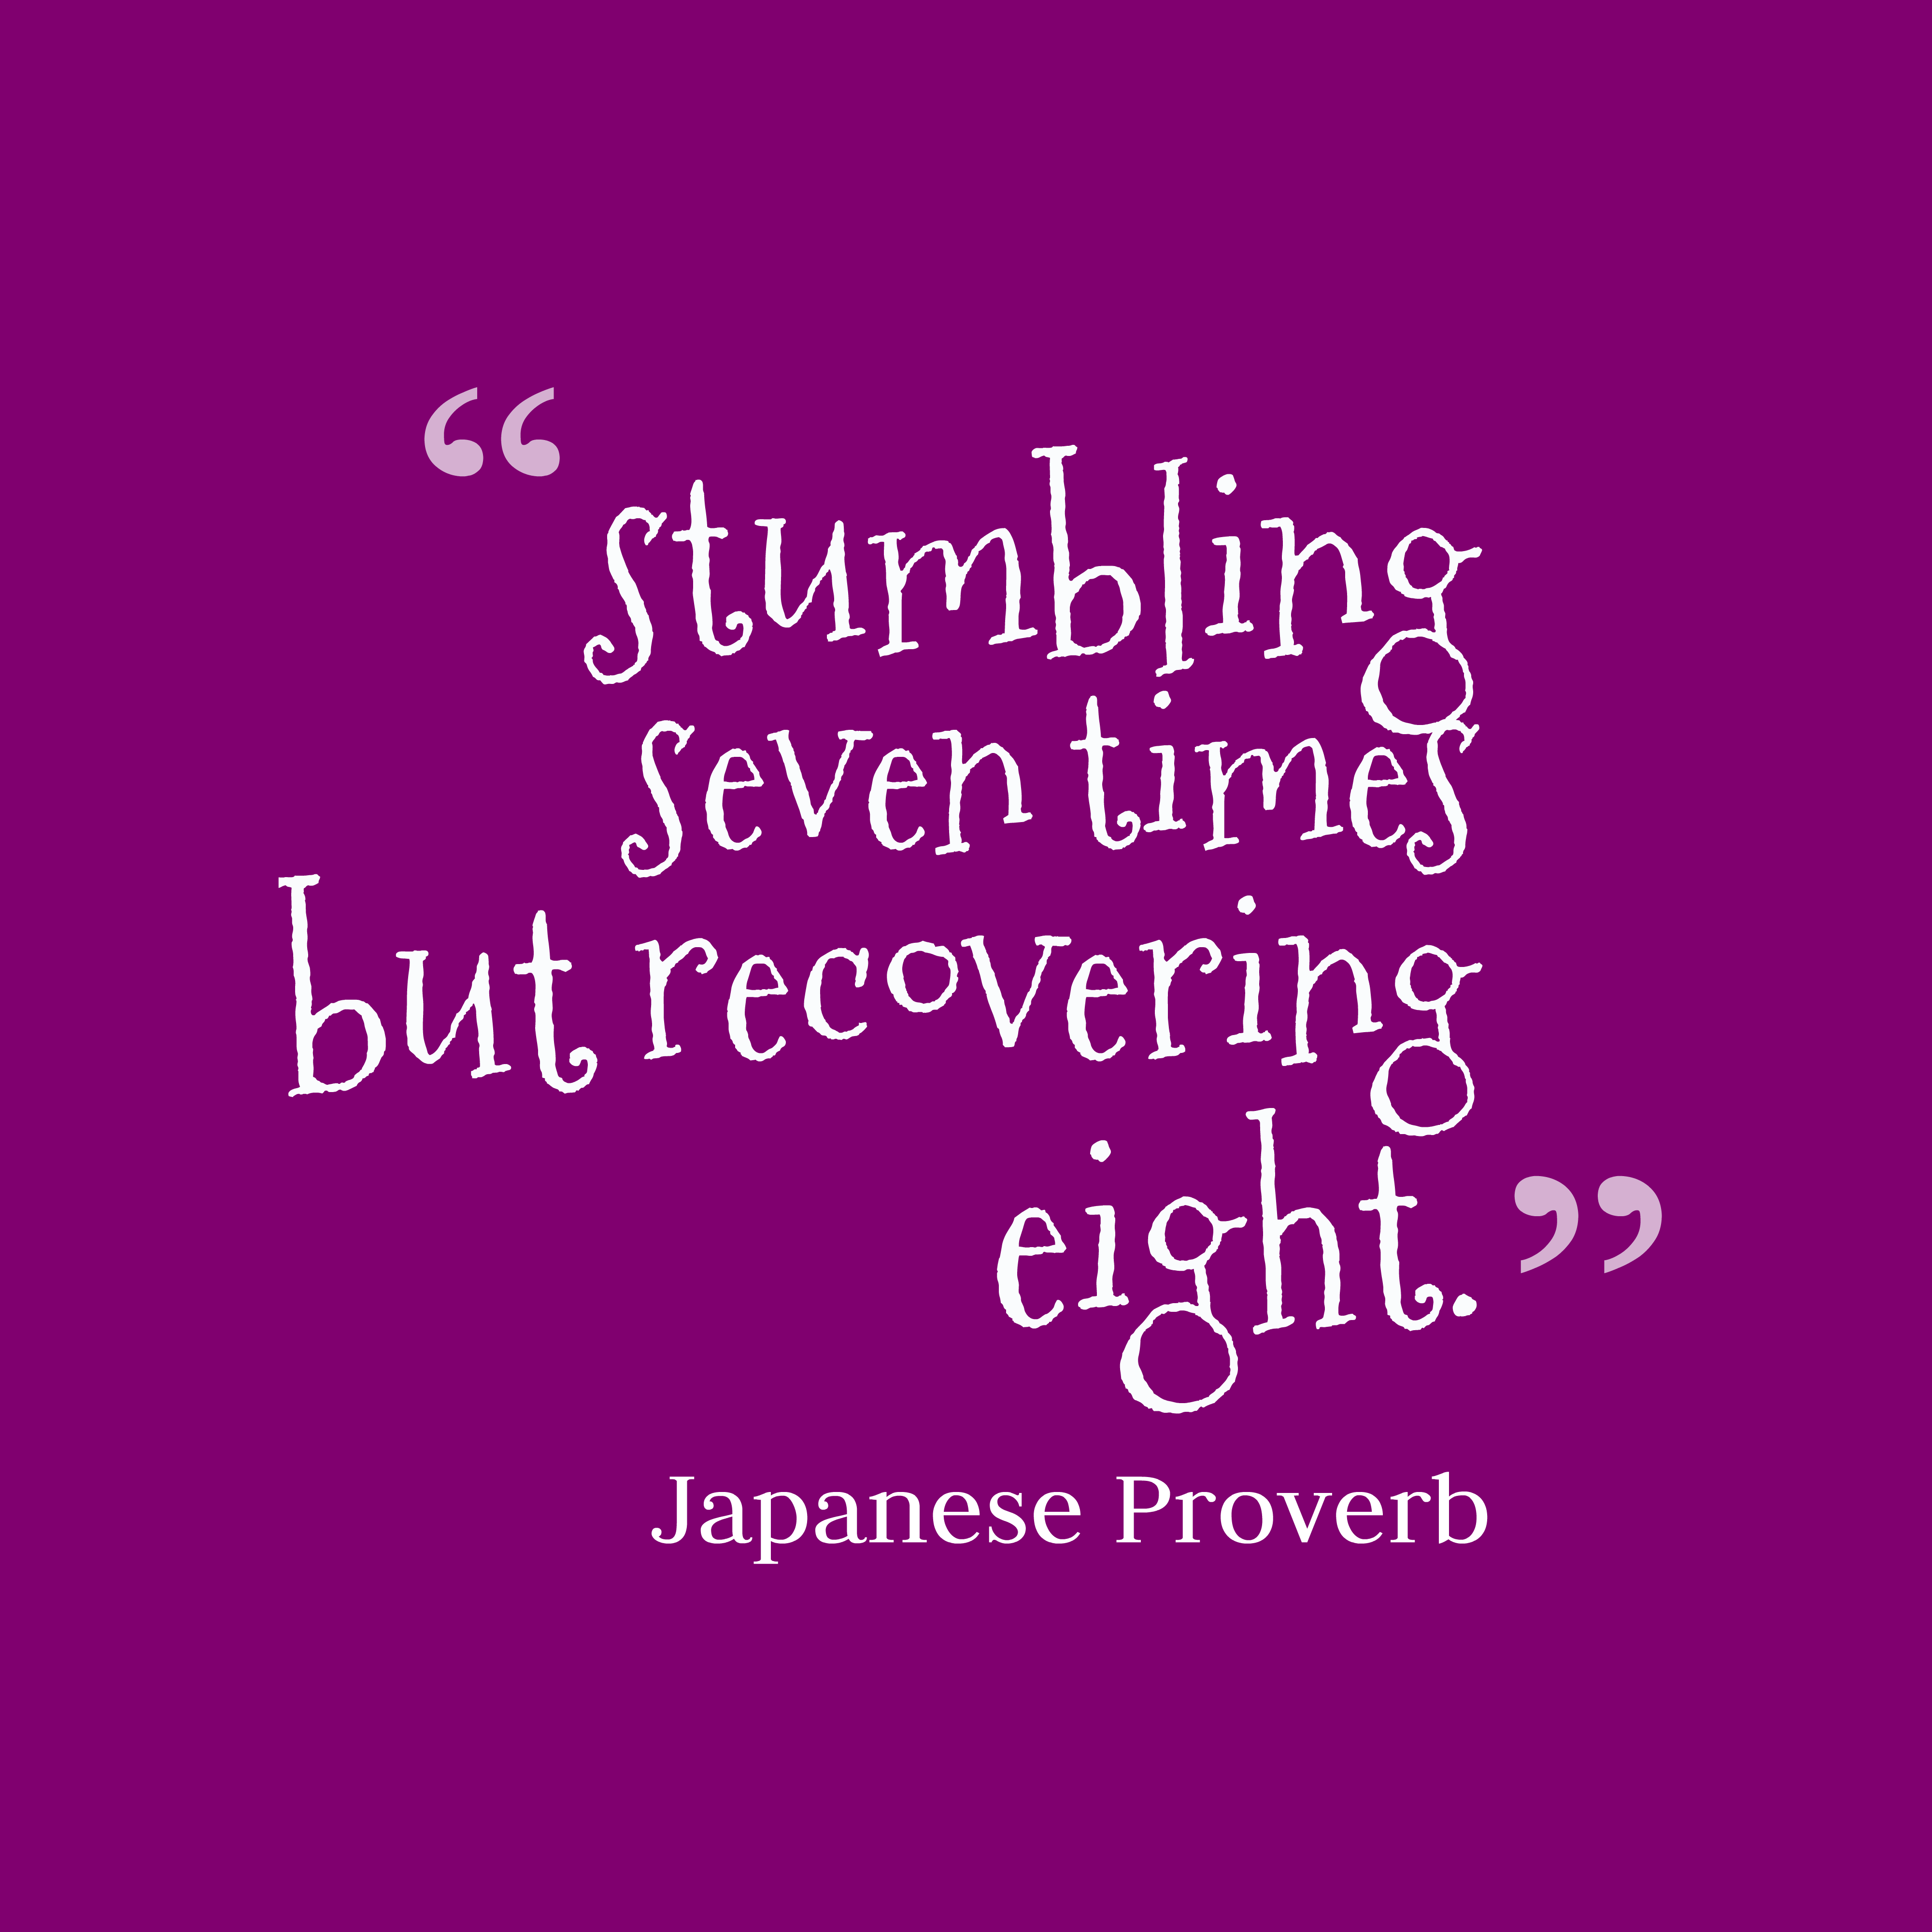 Japanese wisdom about perseverance.